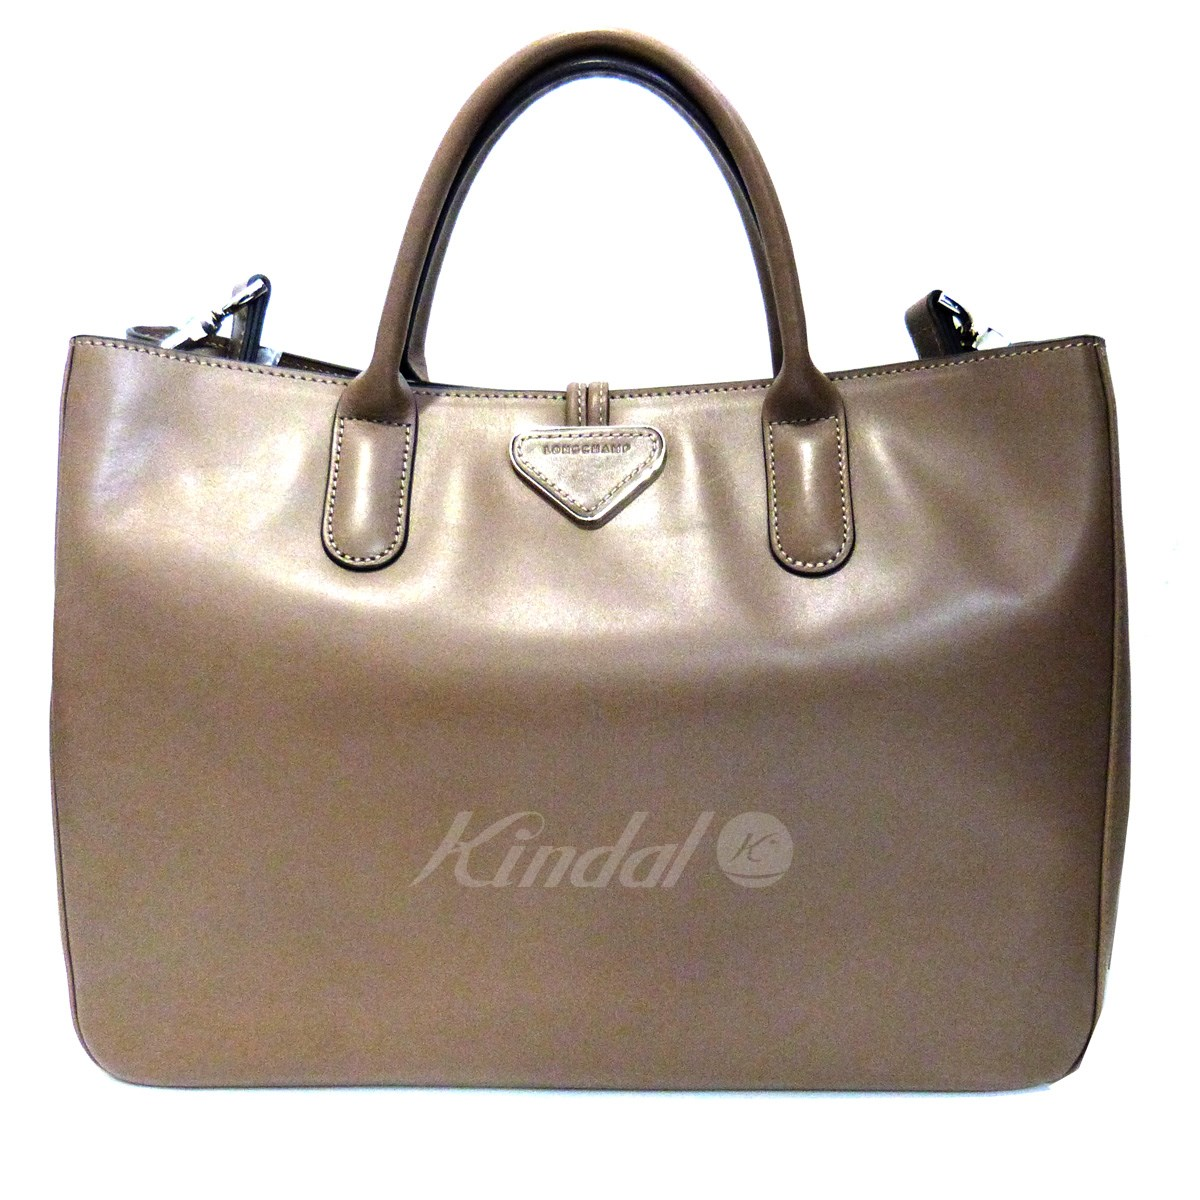 【中古】LONGCHAMP 「ROSEAU」2WAYバッグ 【送料無料】 【010223】 【KIND1327】